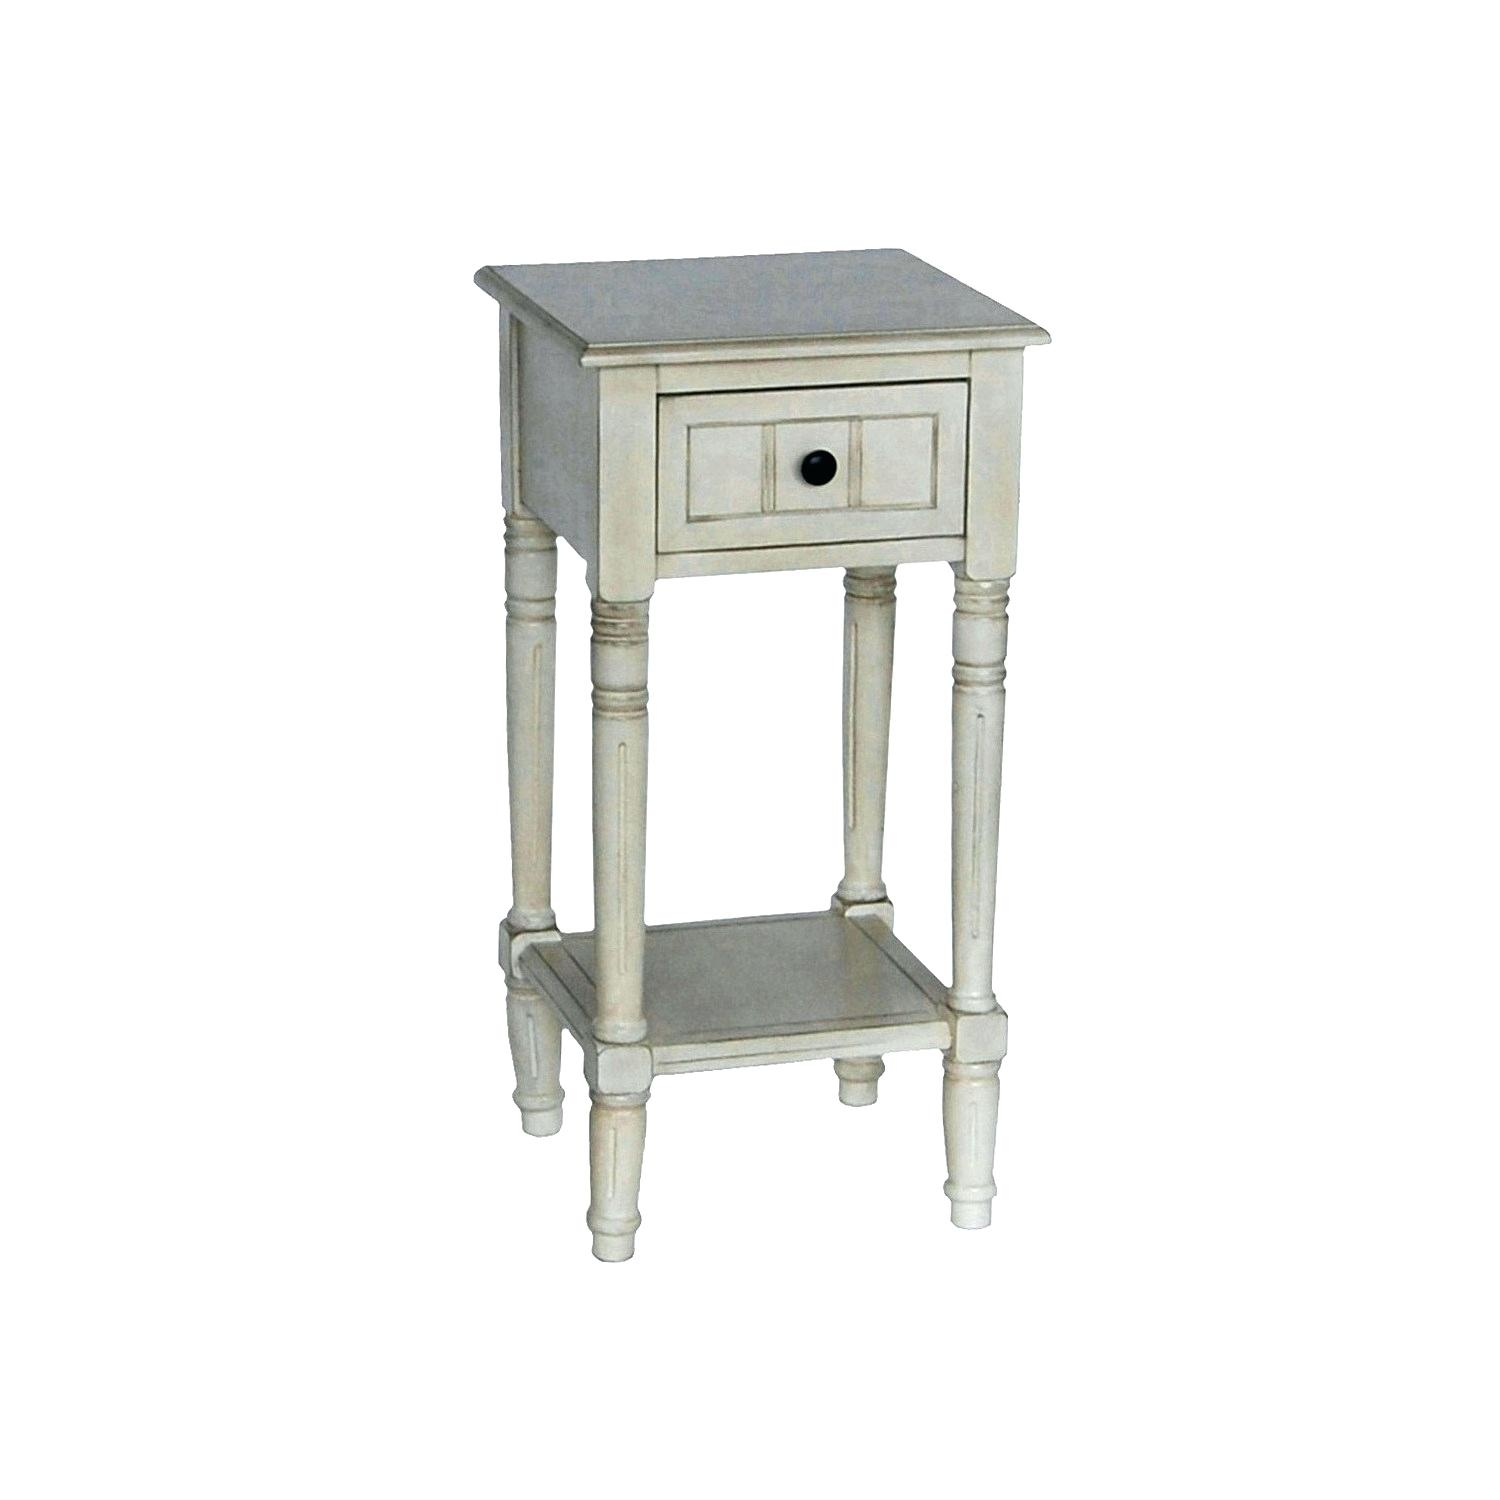 white accent table tables living room distressed round target threshold ikea furniture choice dining small mirror coffee mat glass and iron end nic umbrellas cast aluminum side